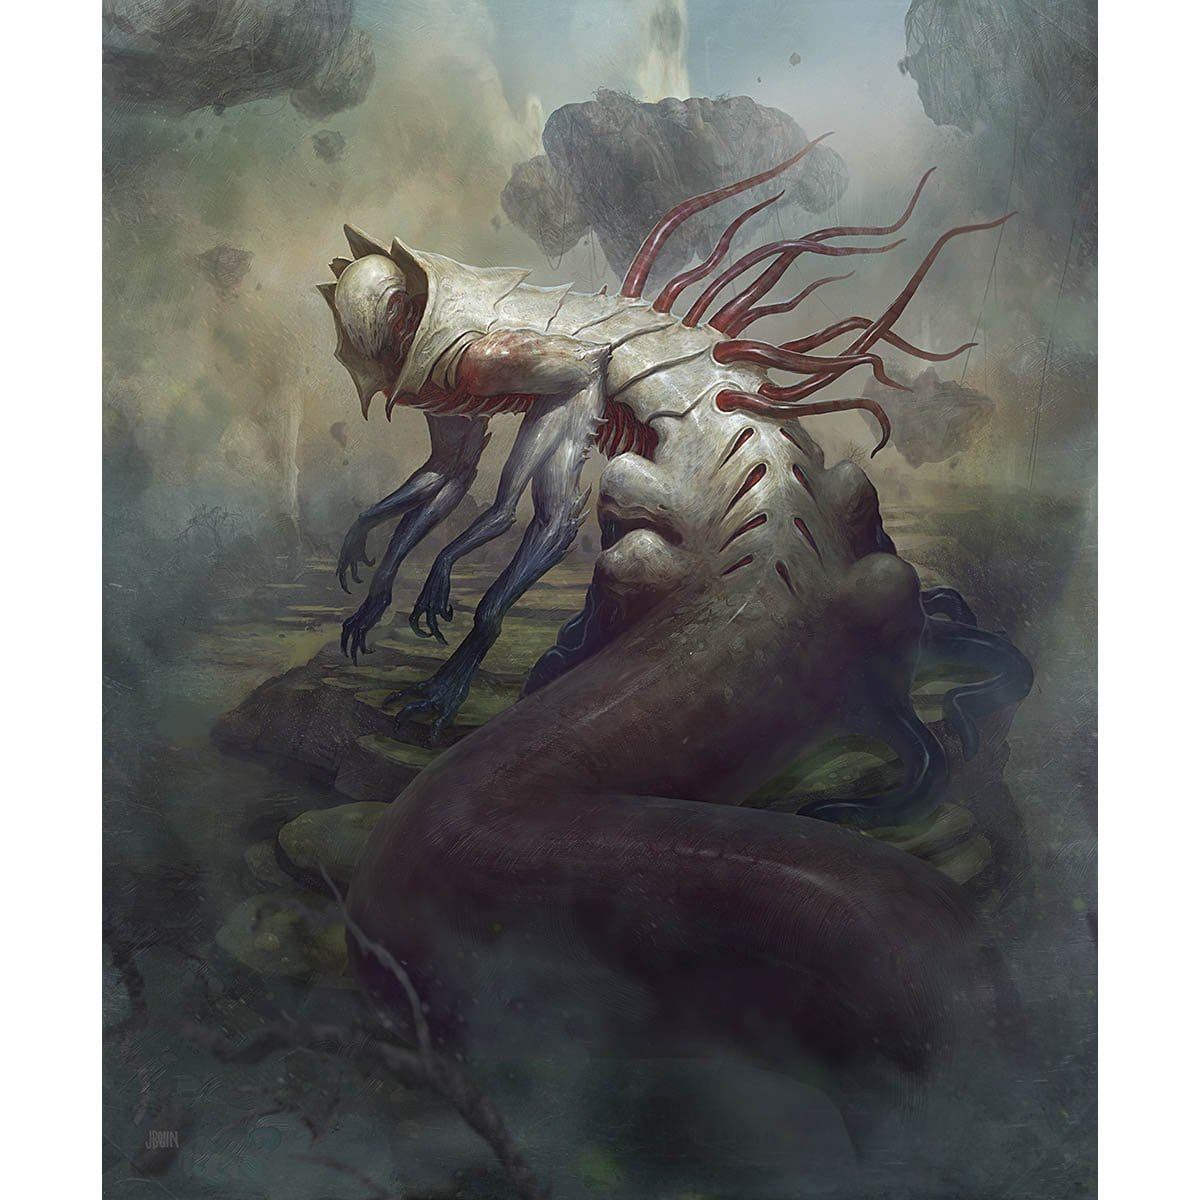 Sludge Crawler Print - Print - Original Magic Art - Accessories for Magic the Gathering and other card games